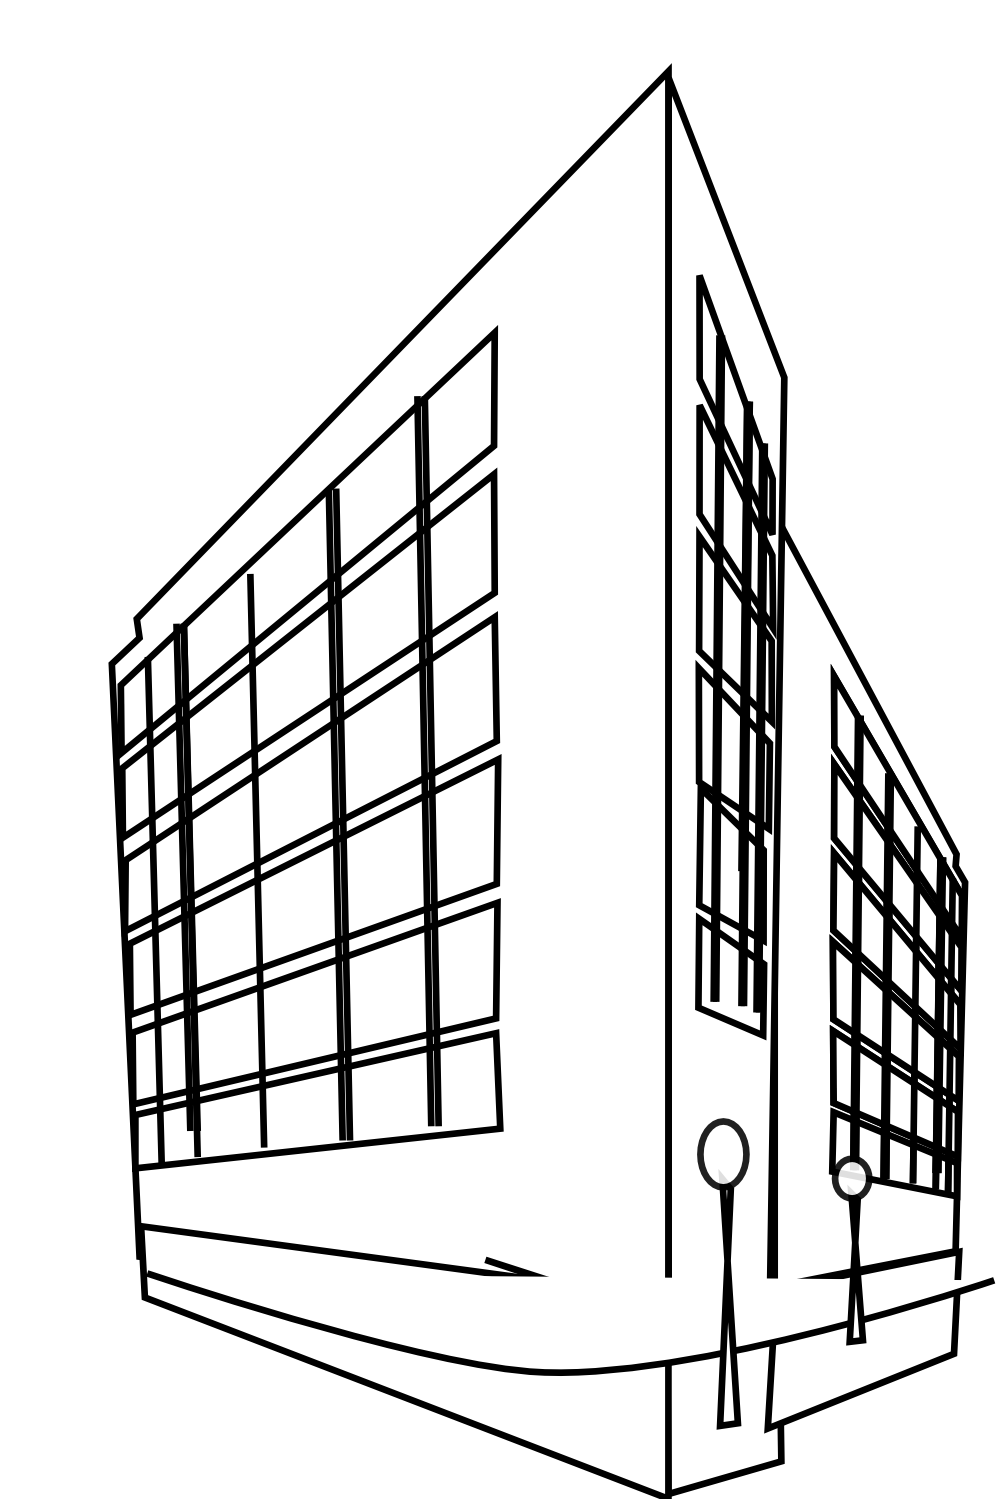 Commercial Building Clipart - Clipart Kid